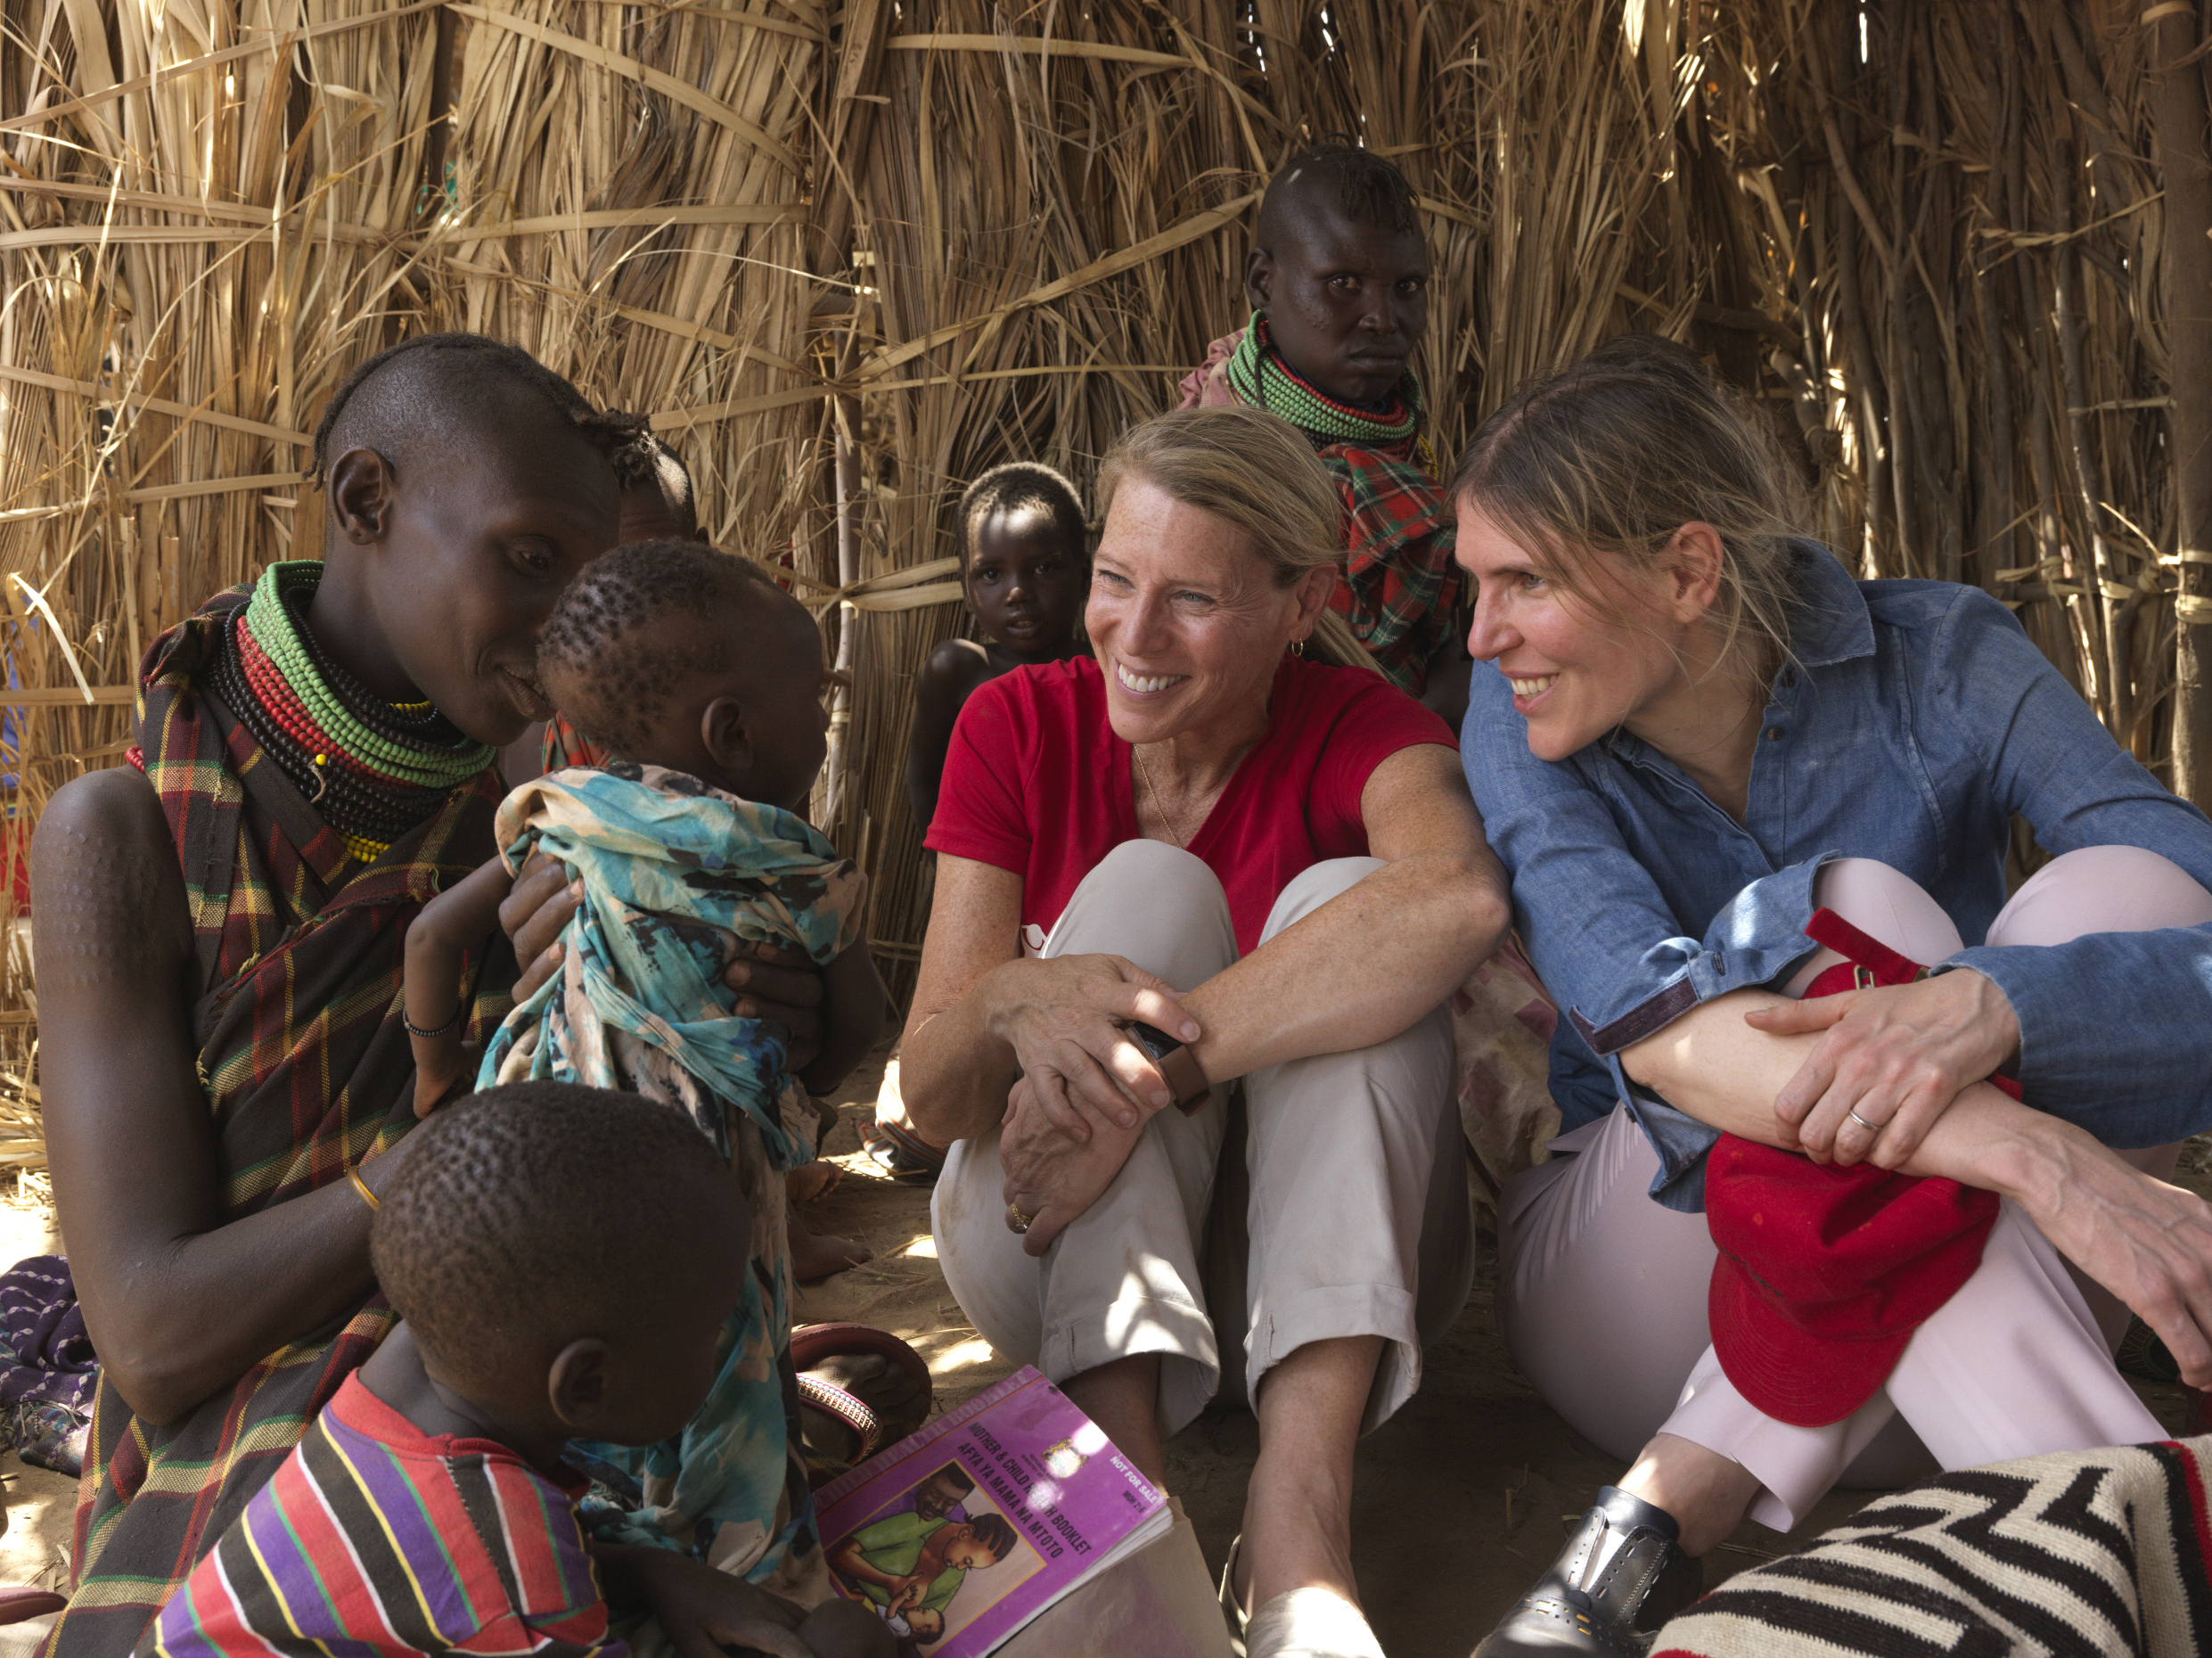 Gabriela Hearst visits Turkana County in Kenya with Save the Children